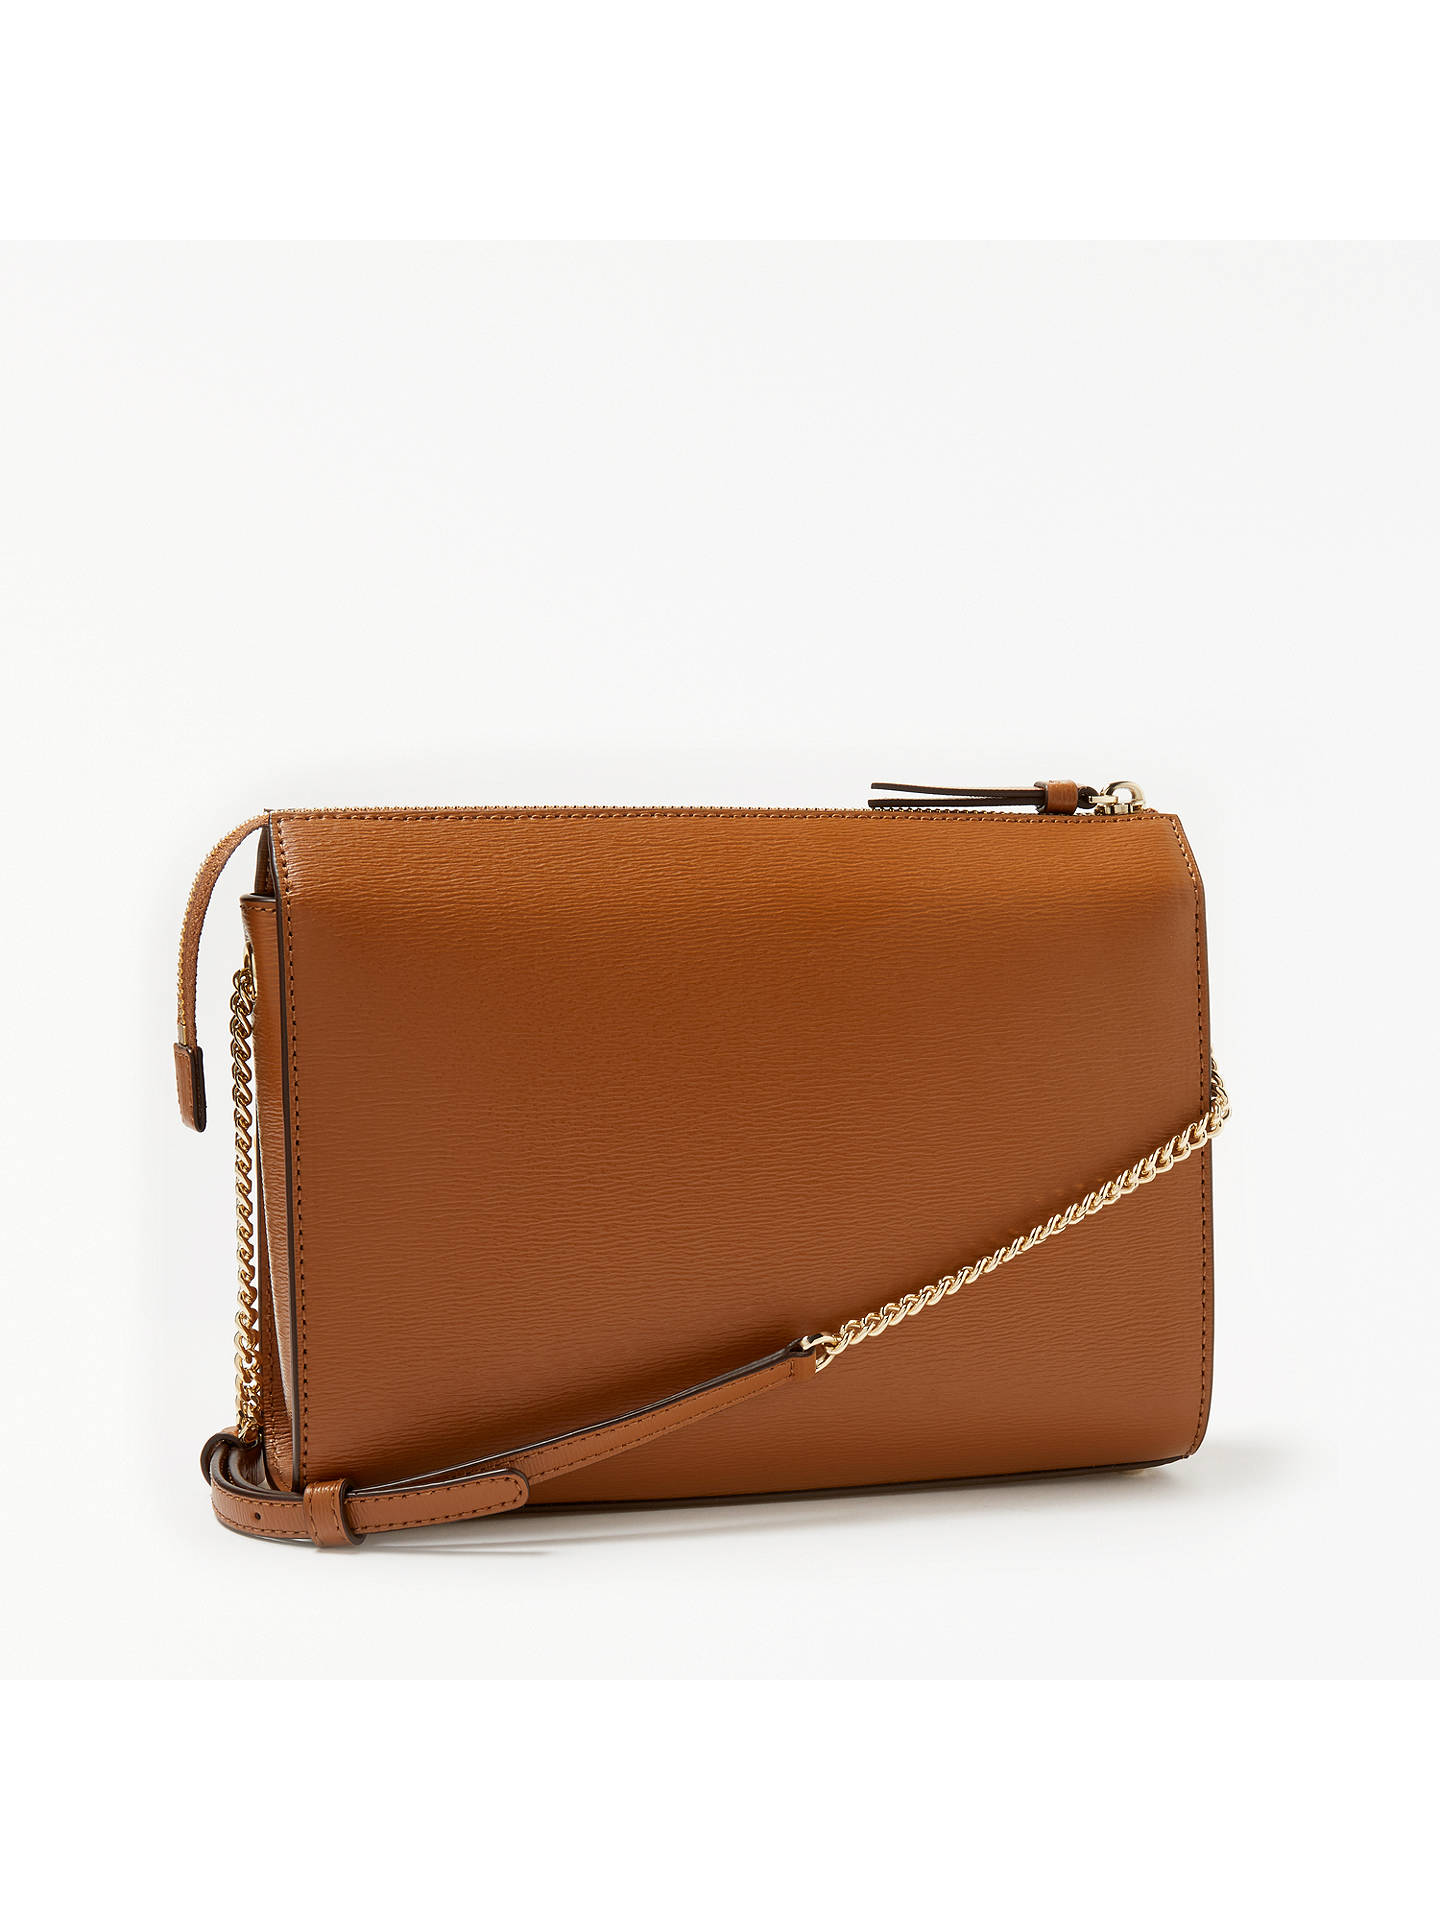 DKNY Sutton Textured Leather Small Cross Body Bag at John